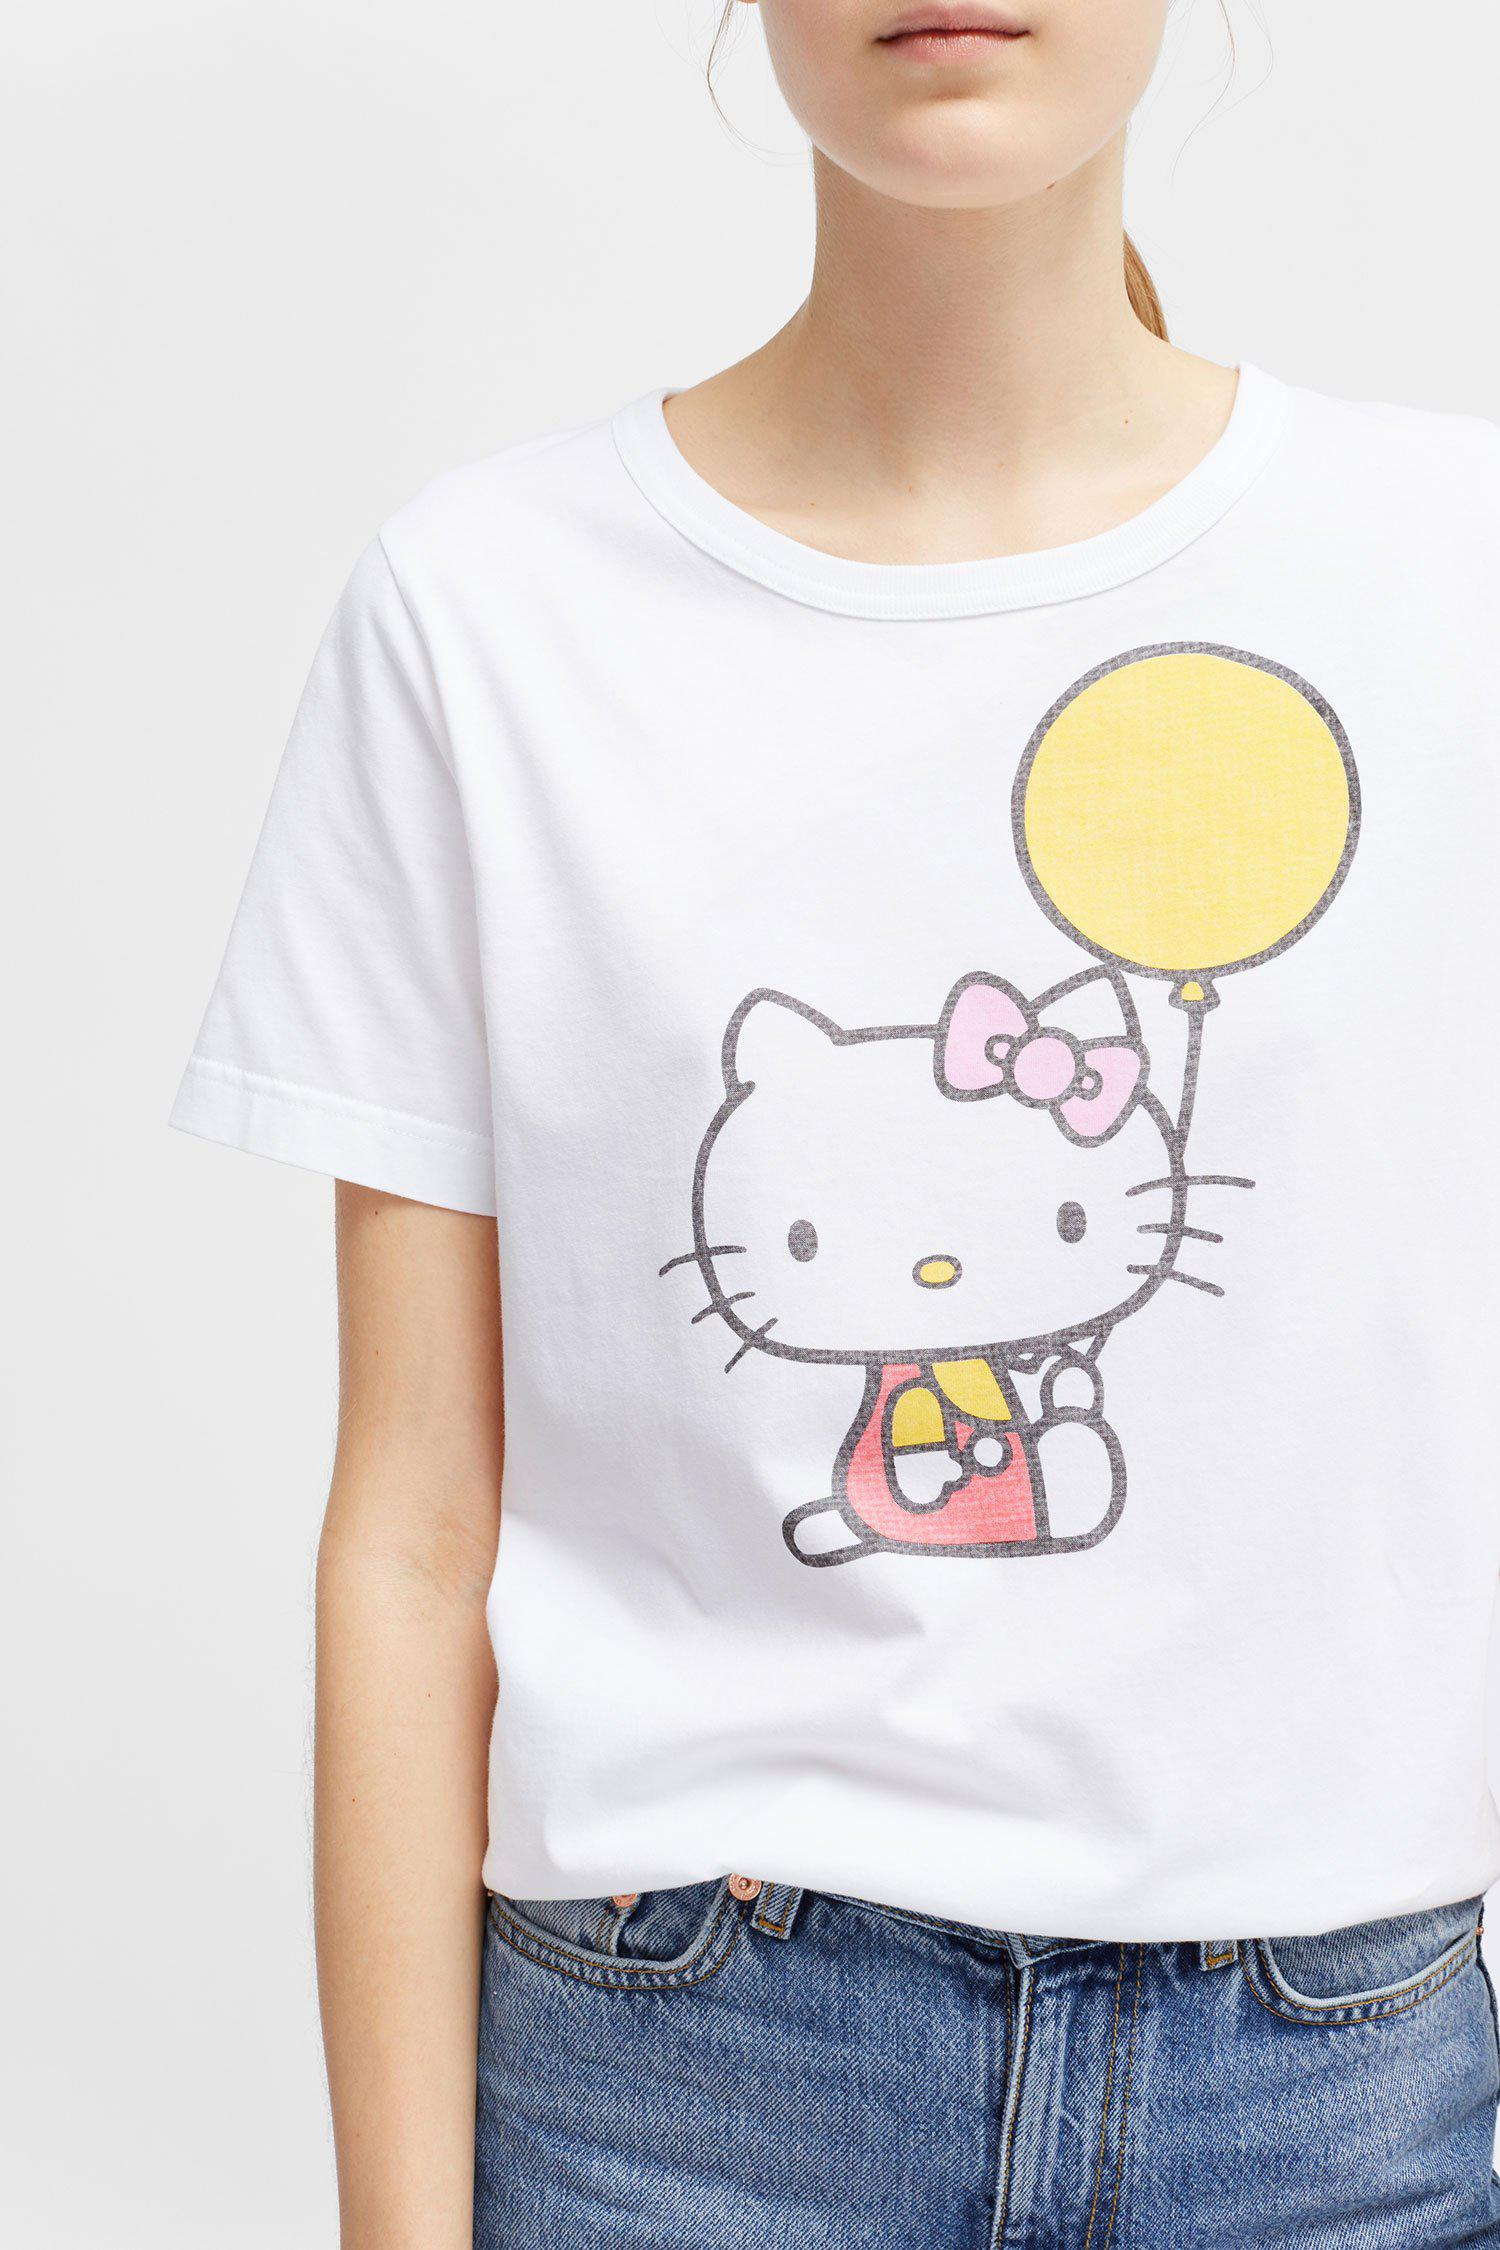 94ea3a4d3 Chinti & Parker Hello Kitty Print T-shirt in White - Lyst